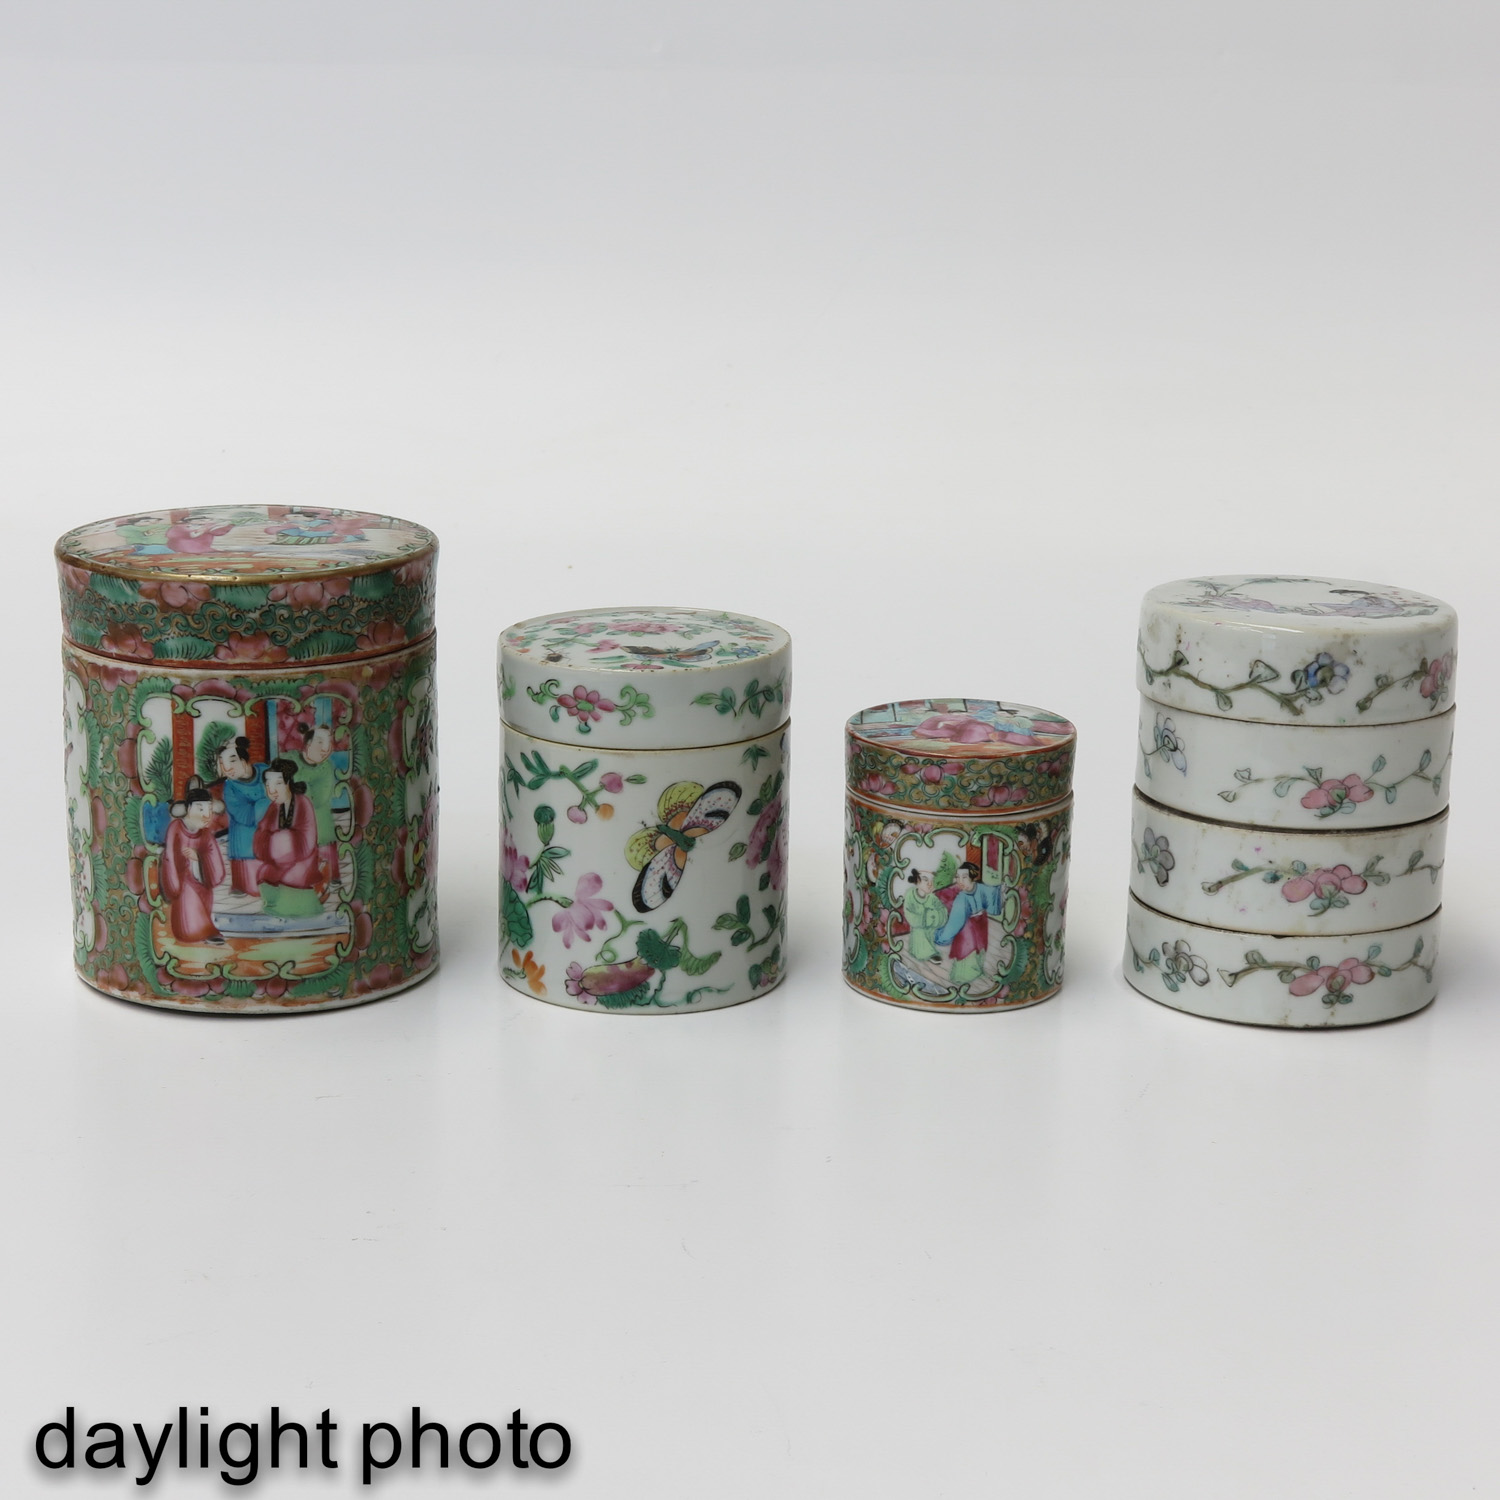 A Collection of 4 Chinese Boxes - Image 7 of 10